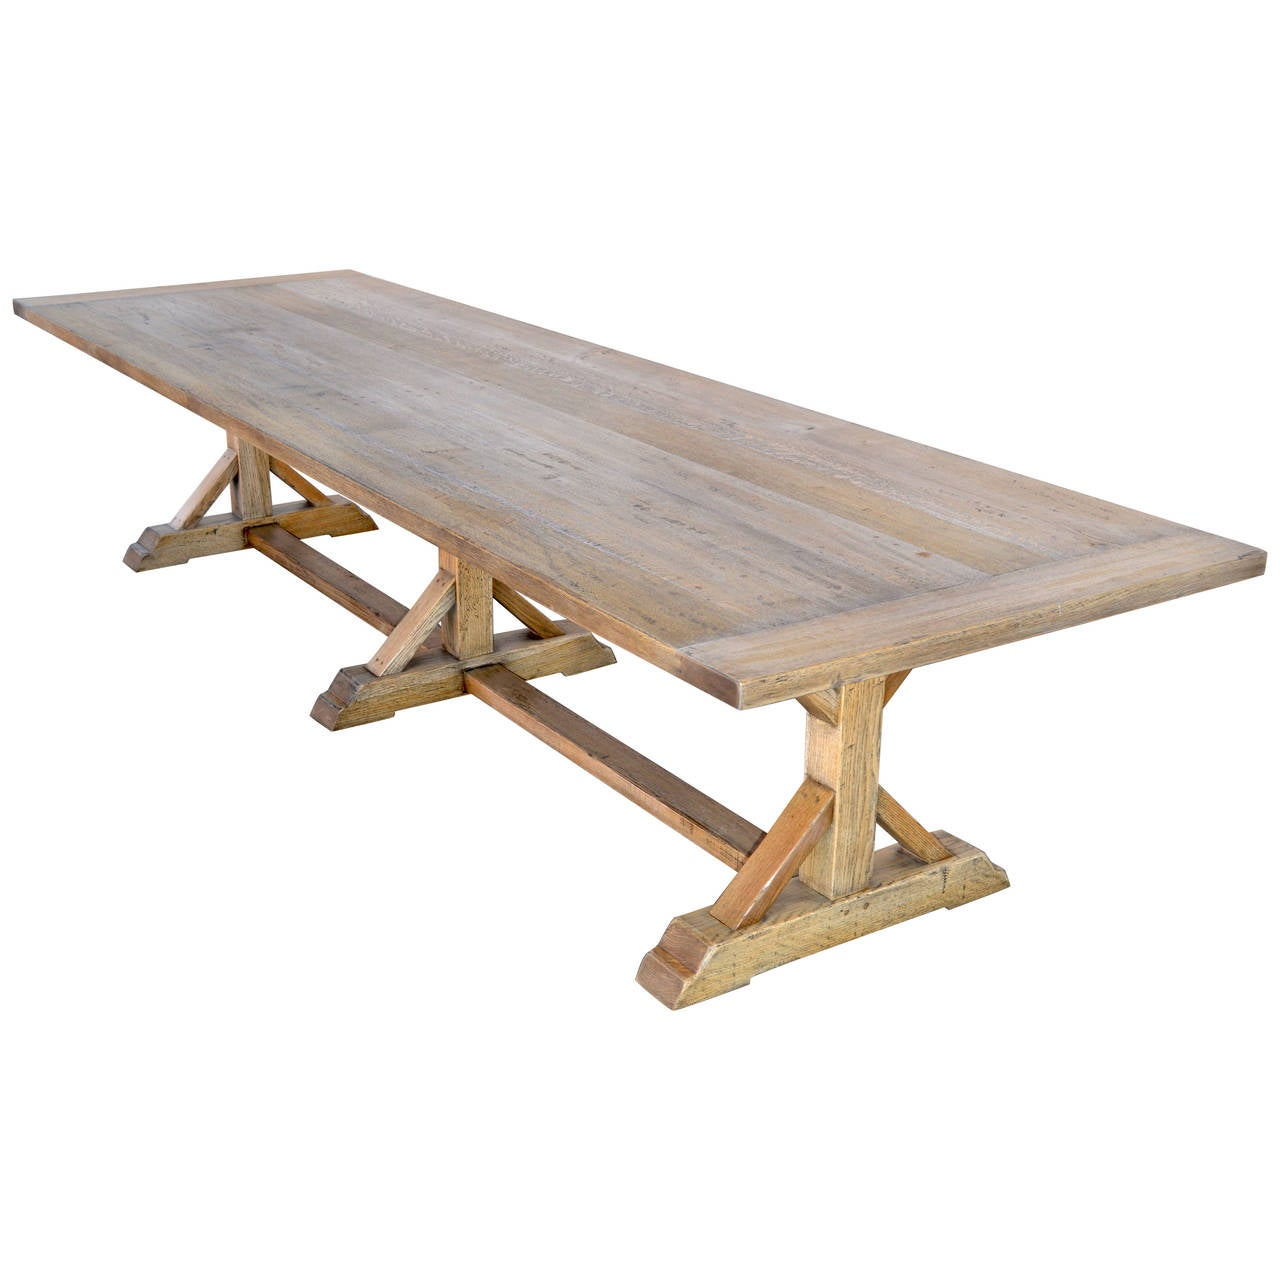 Vintage Oak Farm Table at 1stdibs : 2861192l from www.1stdibs.com size 1280 x 1280 jpeg 81kB